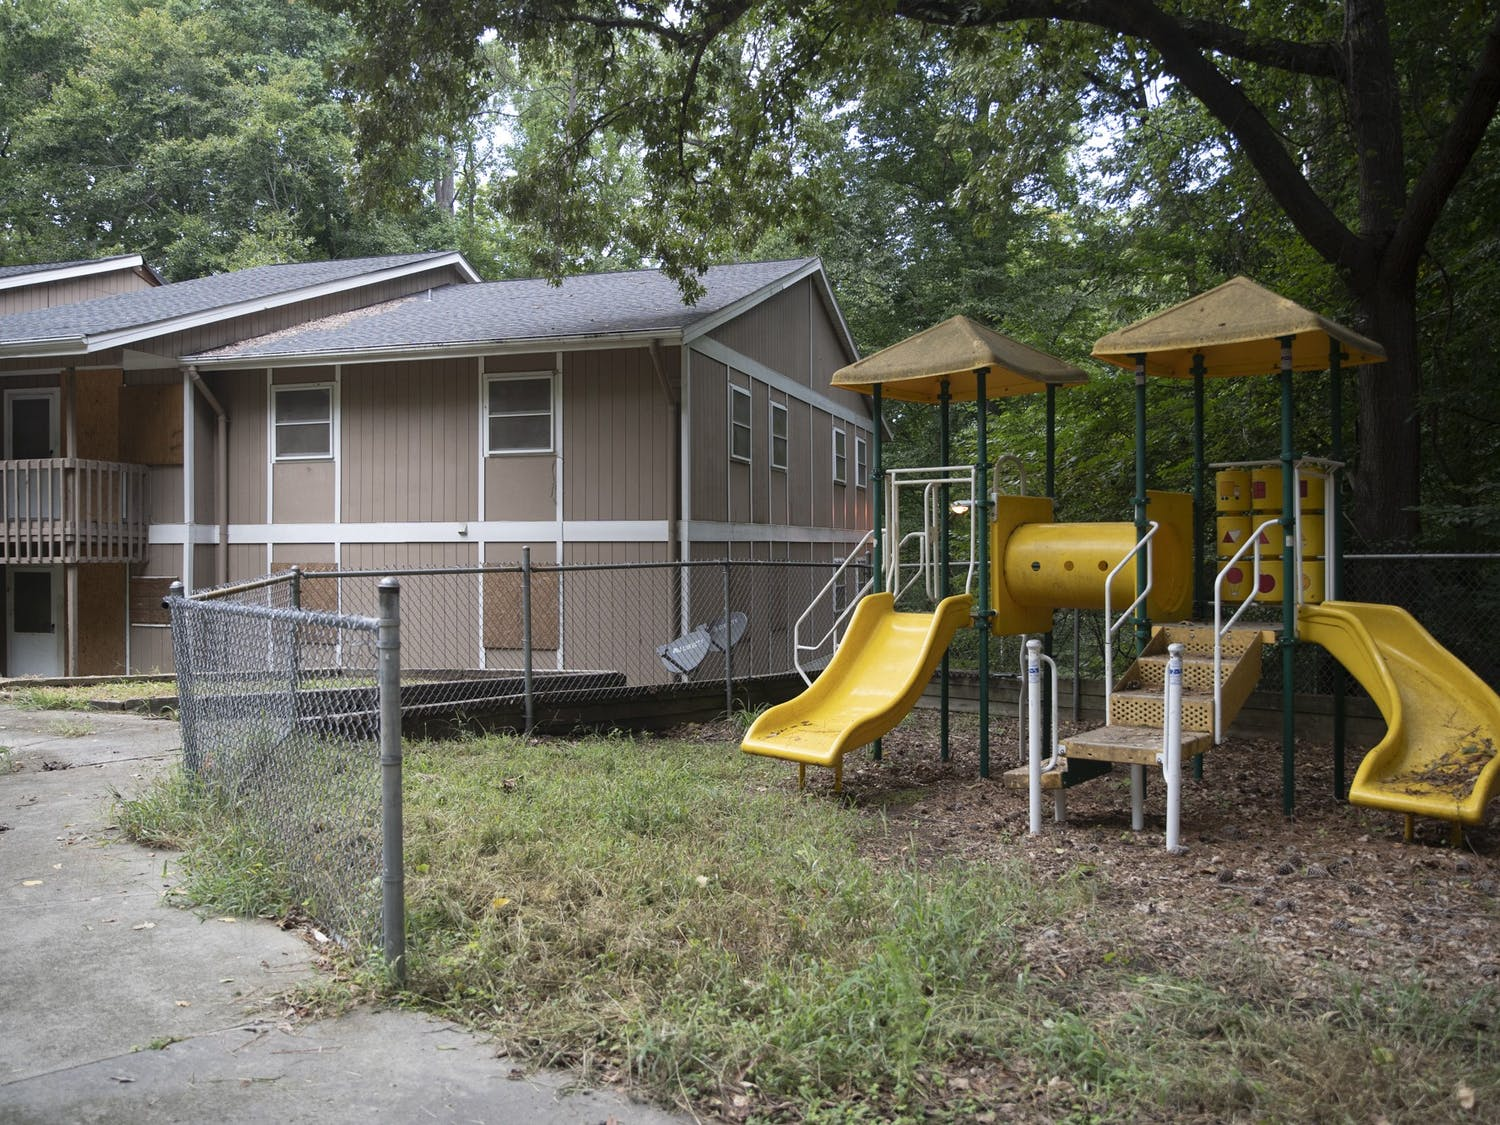 Trinity Court public housing community remains vacant due to structural damage on Saturday, Aug. 29, 2020. Trinity Court is set for demolition and rebuilding starting in 2022.